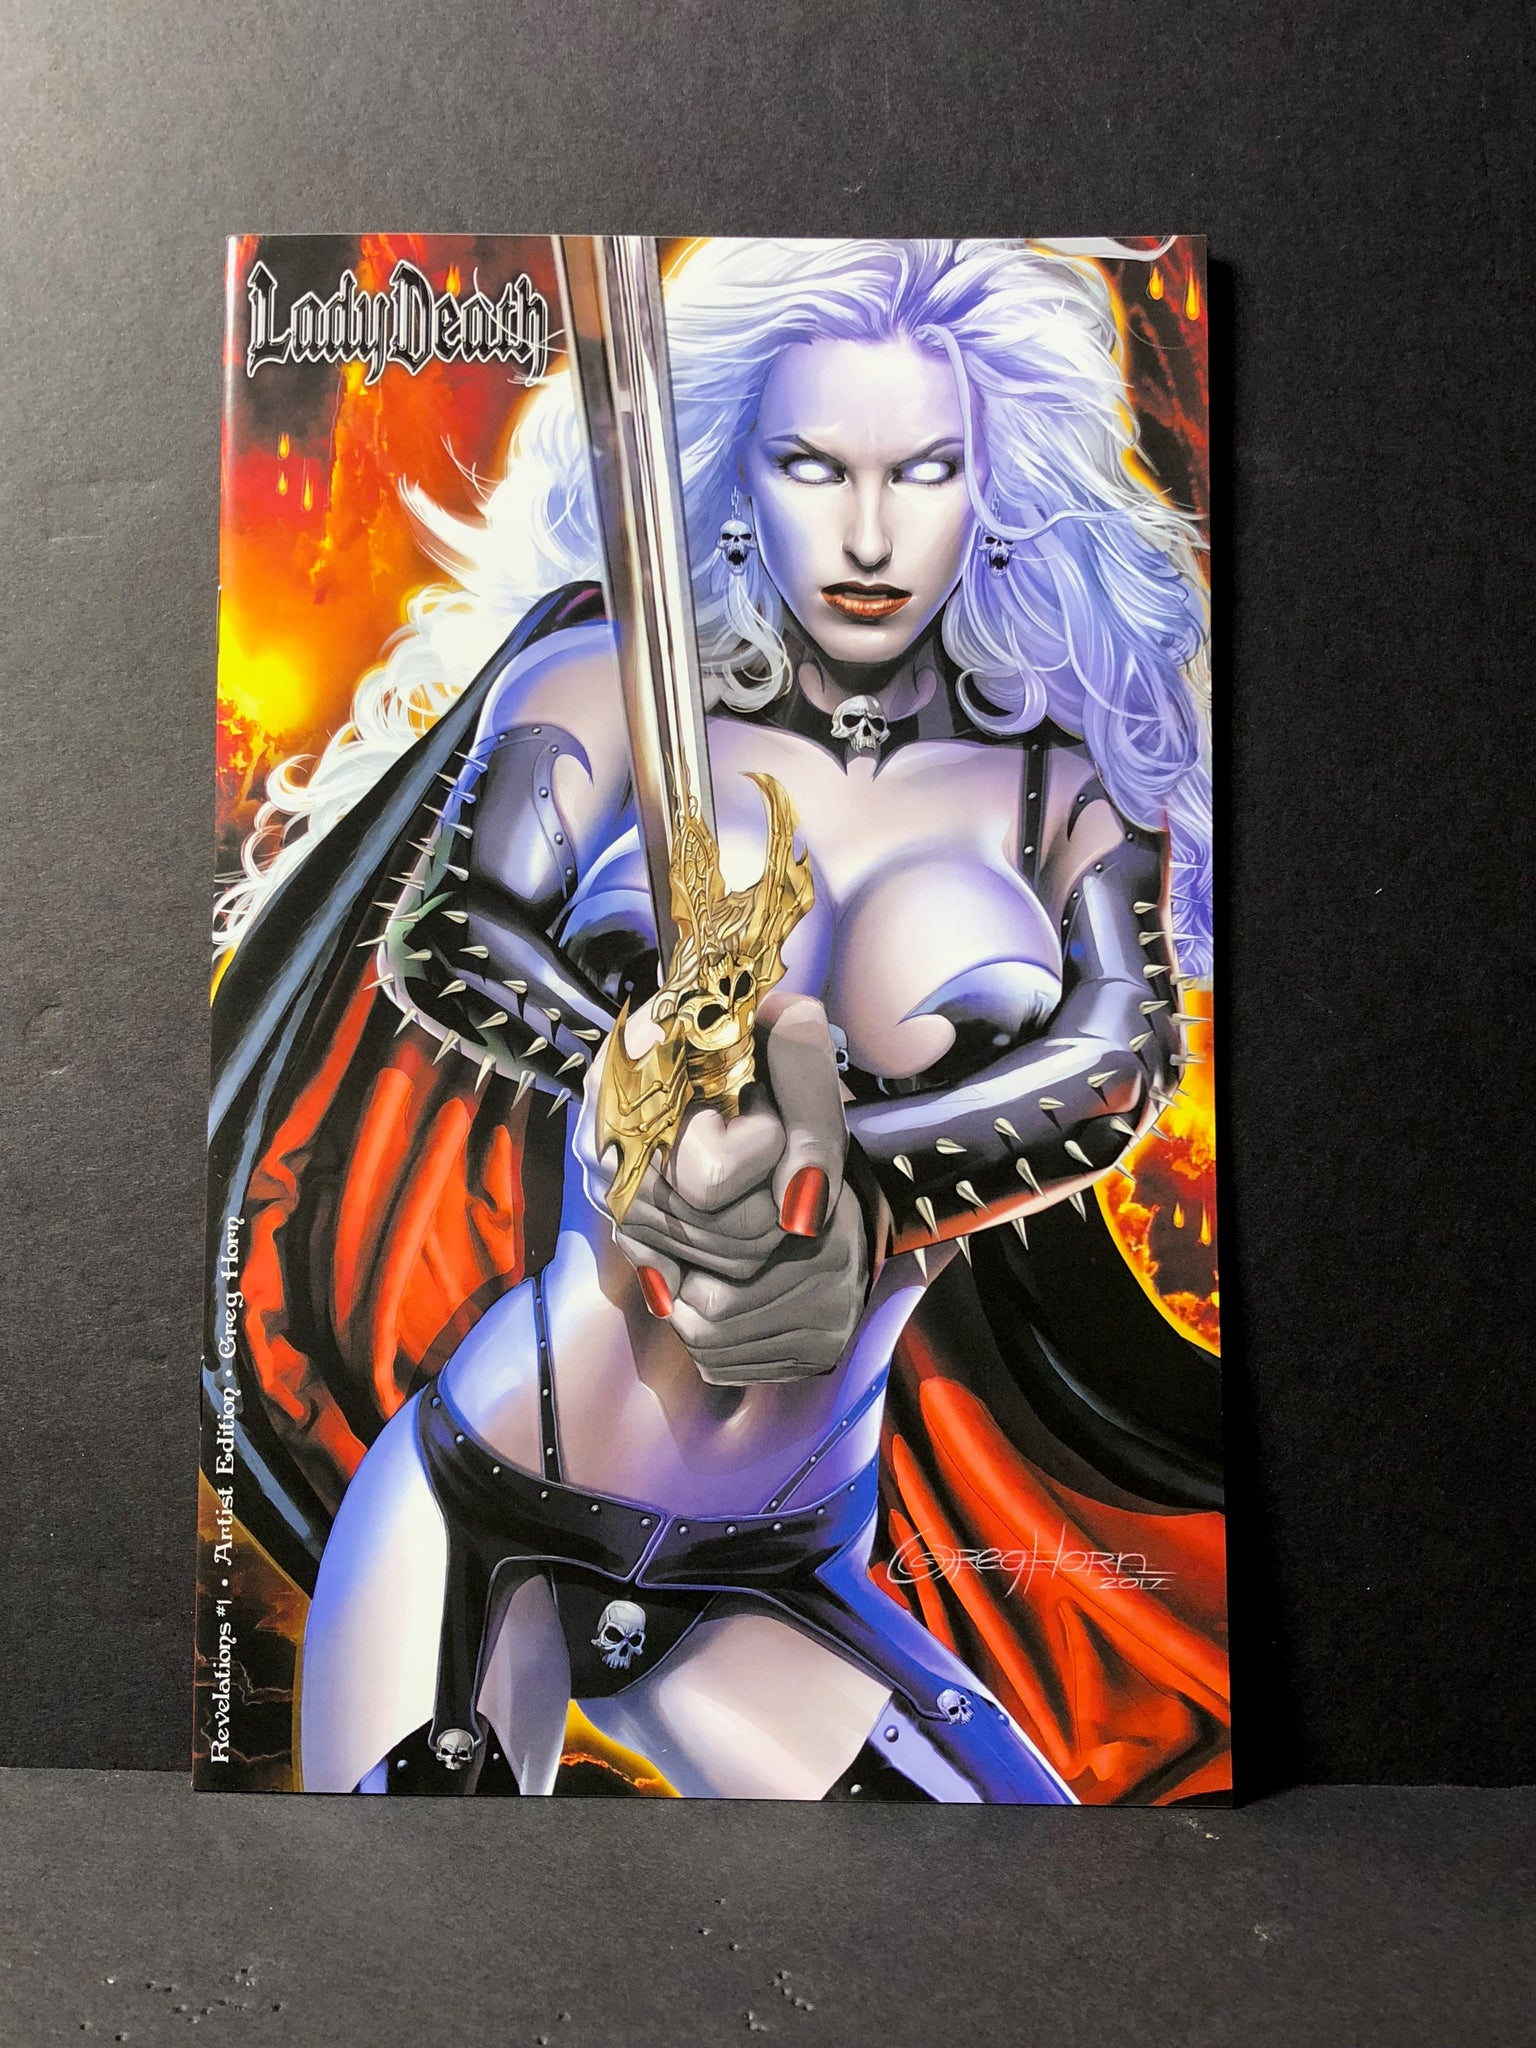 Lady Death Revelations #1 comic book Nice and naughty versions - Limited print options